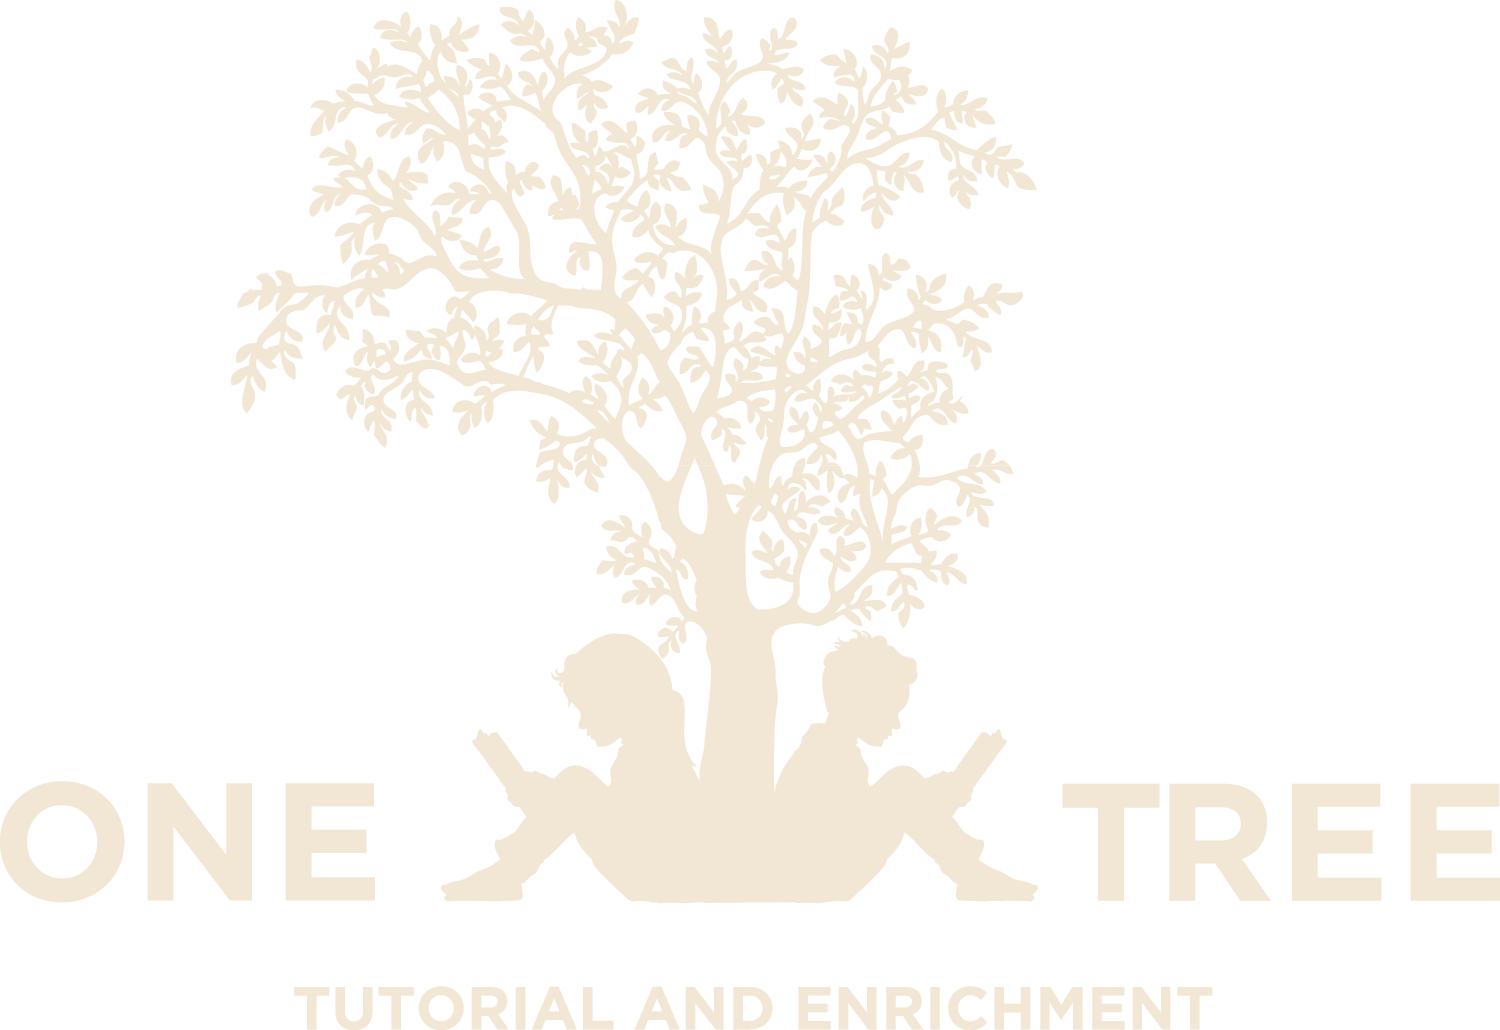 One Tree Tutorial & Enrichment